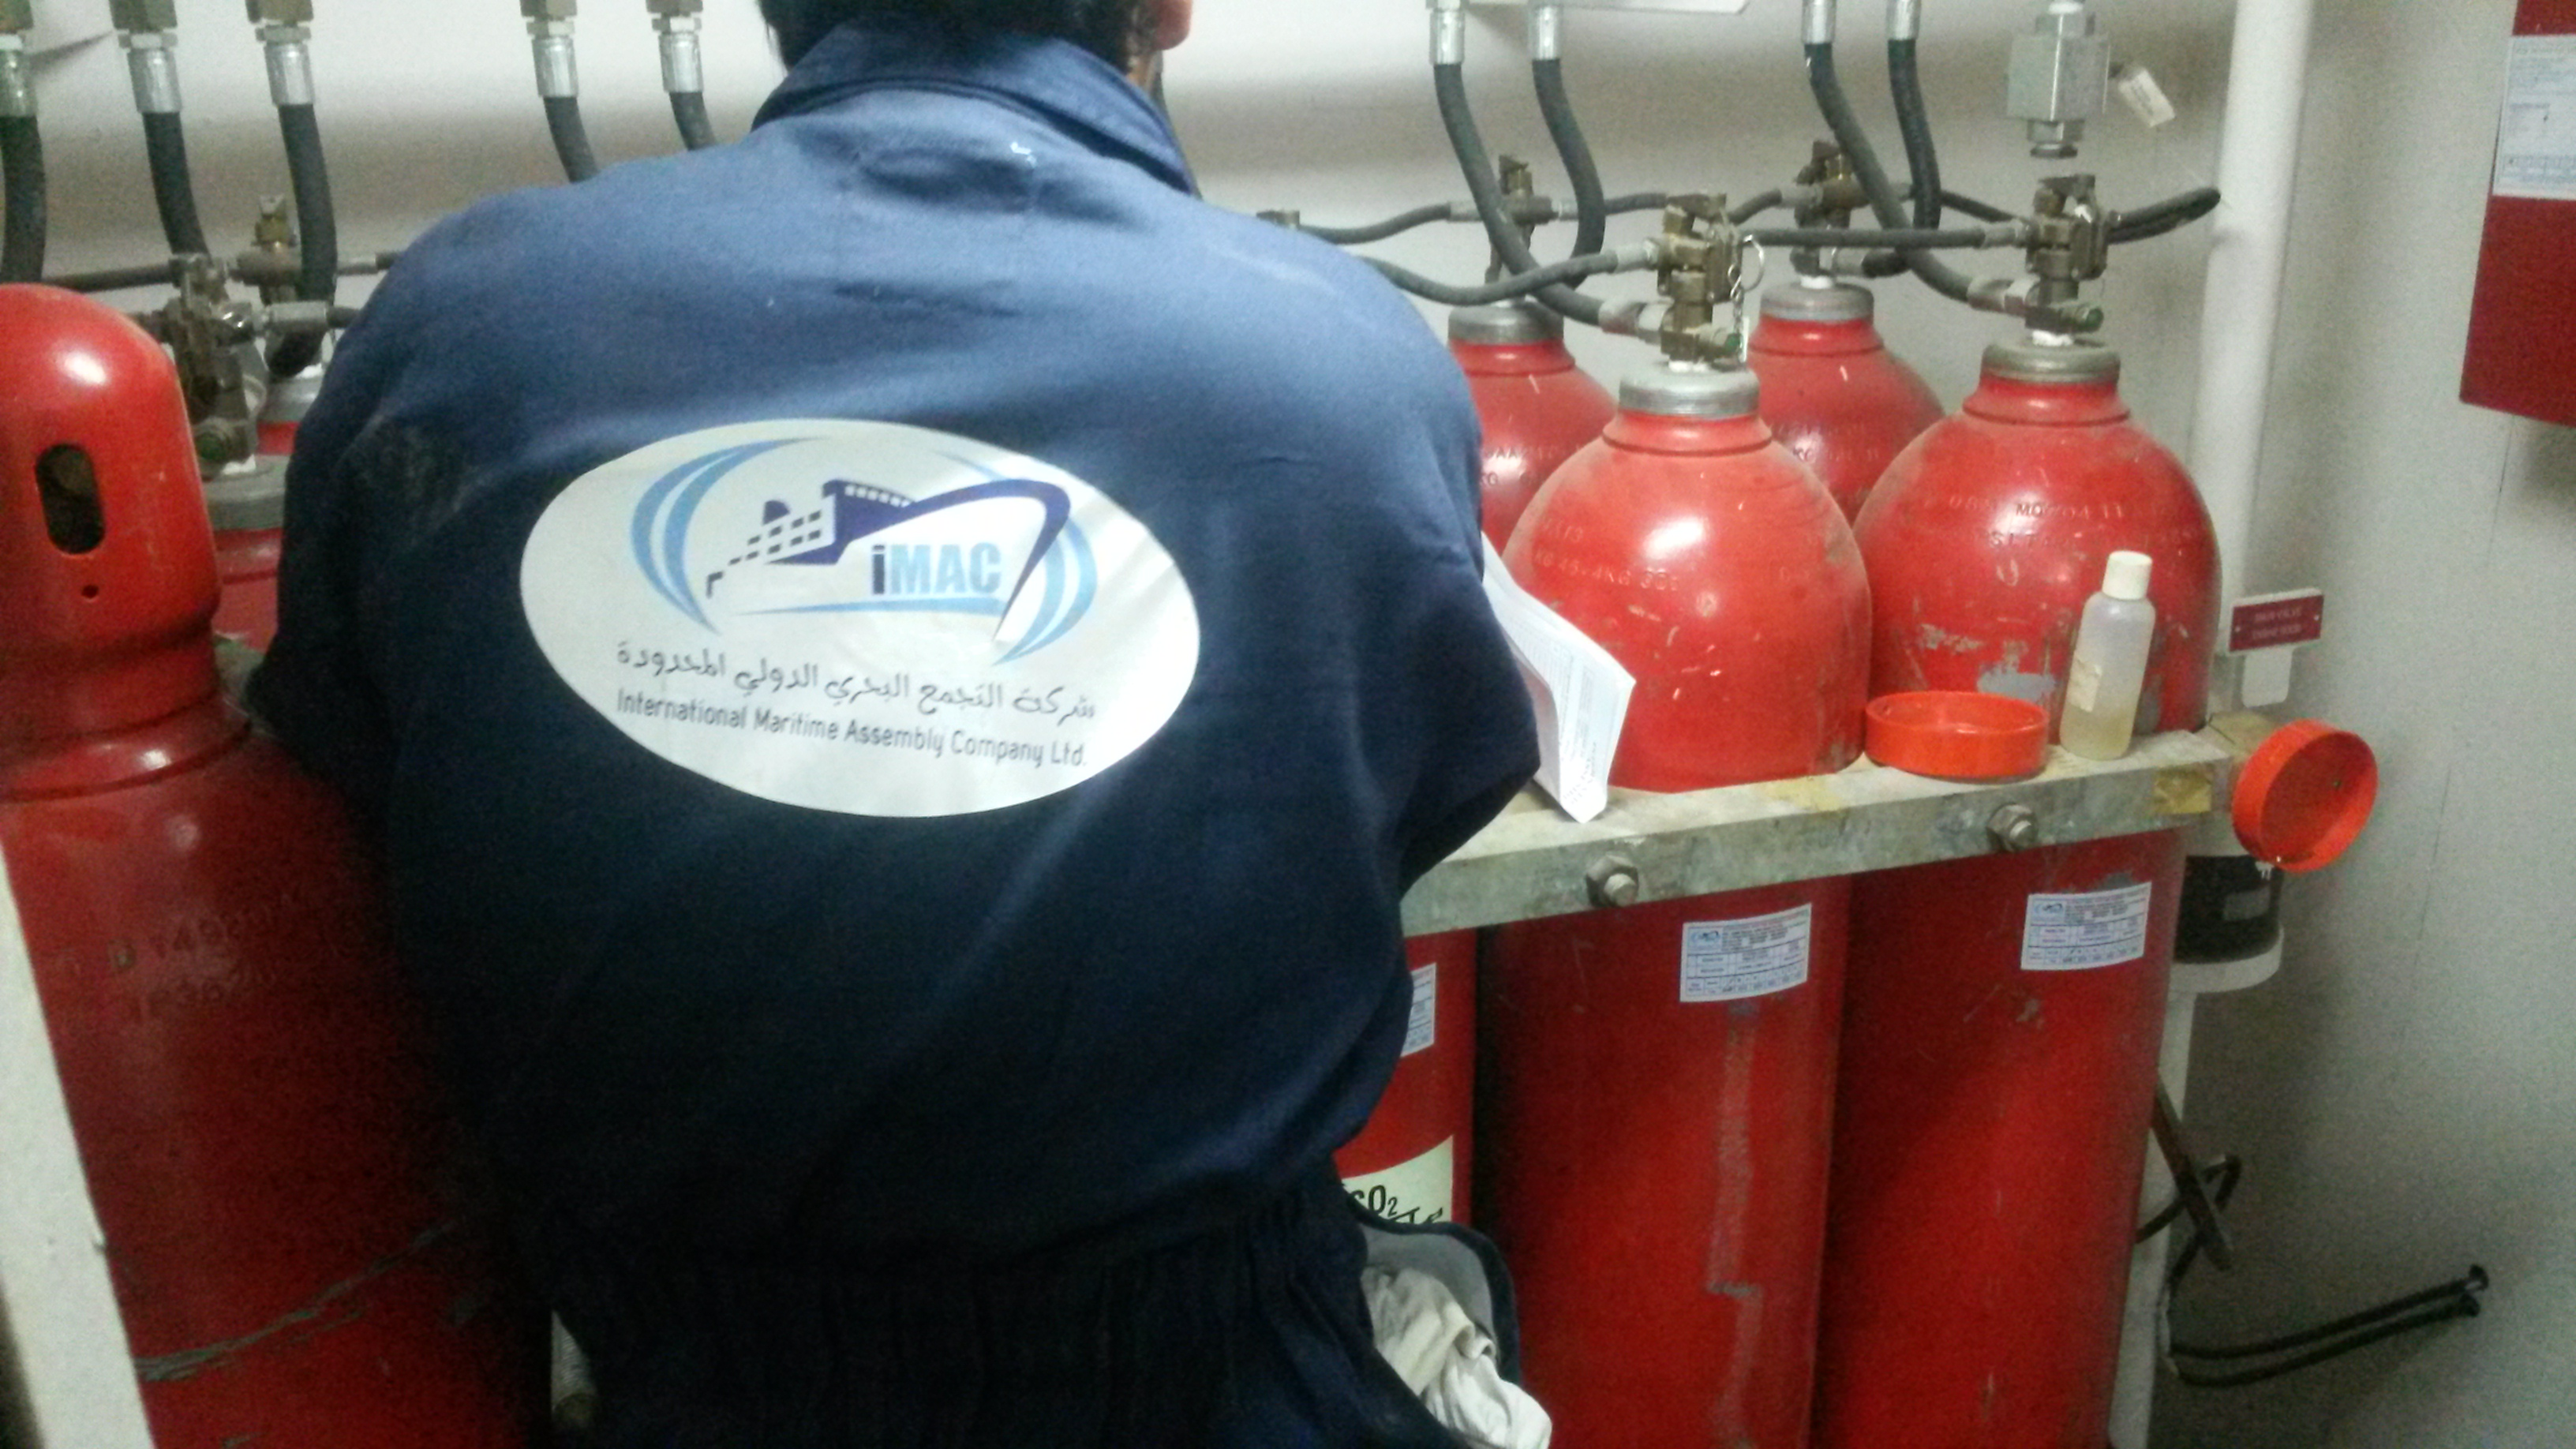 Authorized Fire Fighting Equipment Services Imac